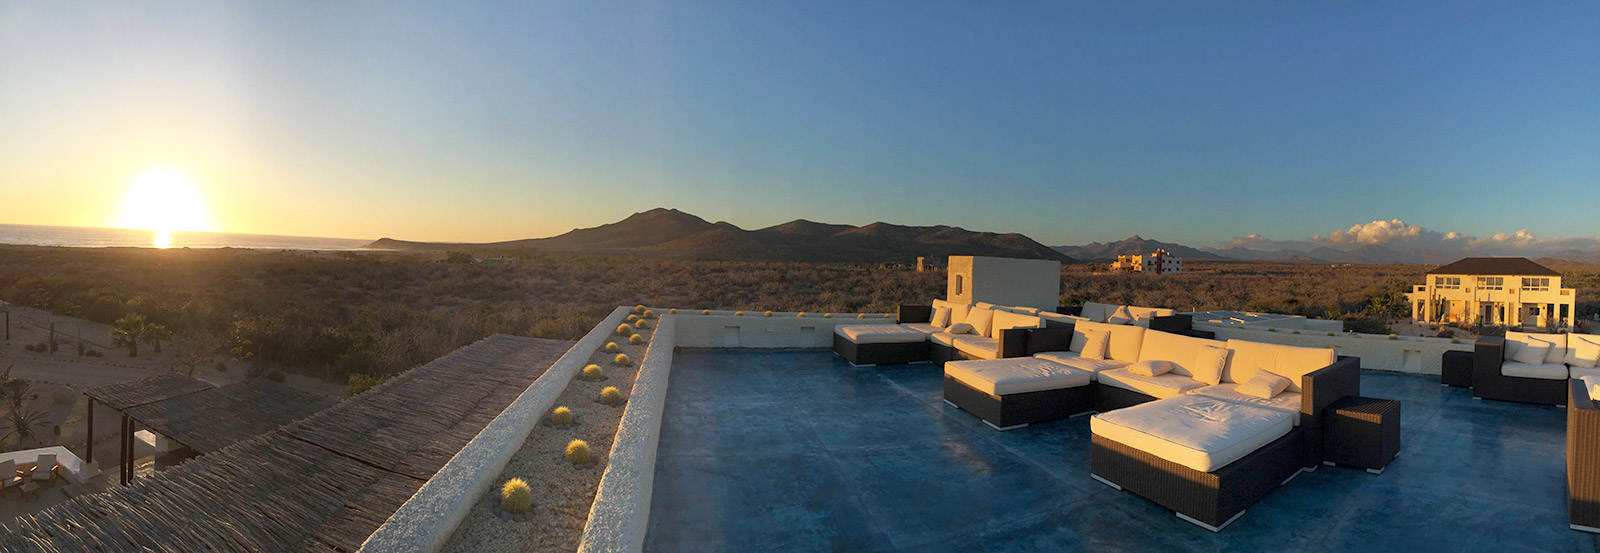 Roof Deck Sunset - Yoga Retreat - Mexico